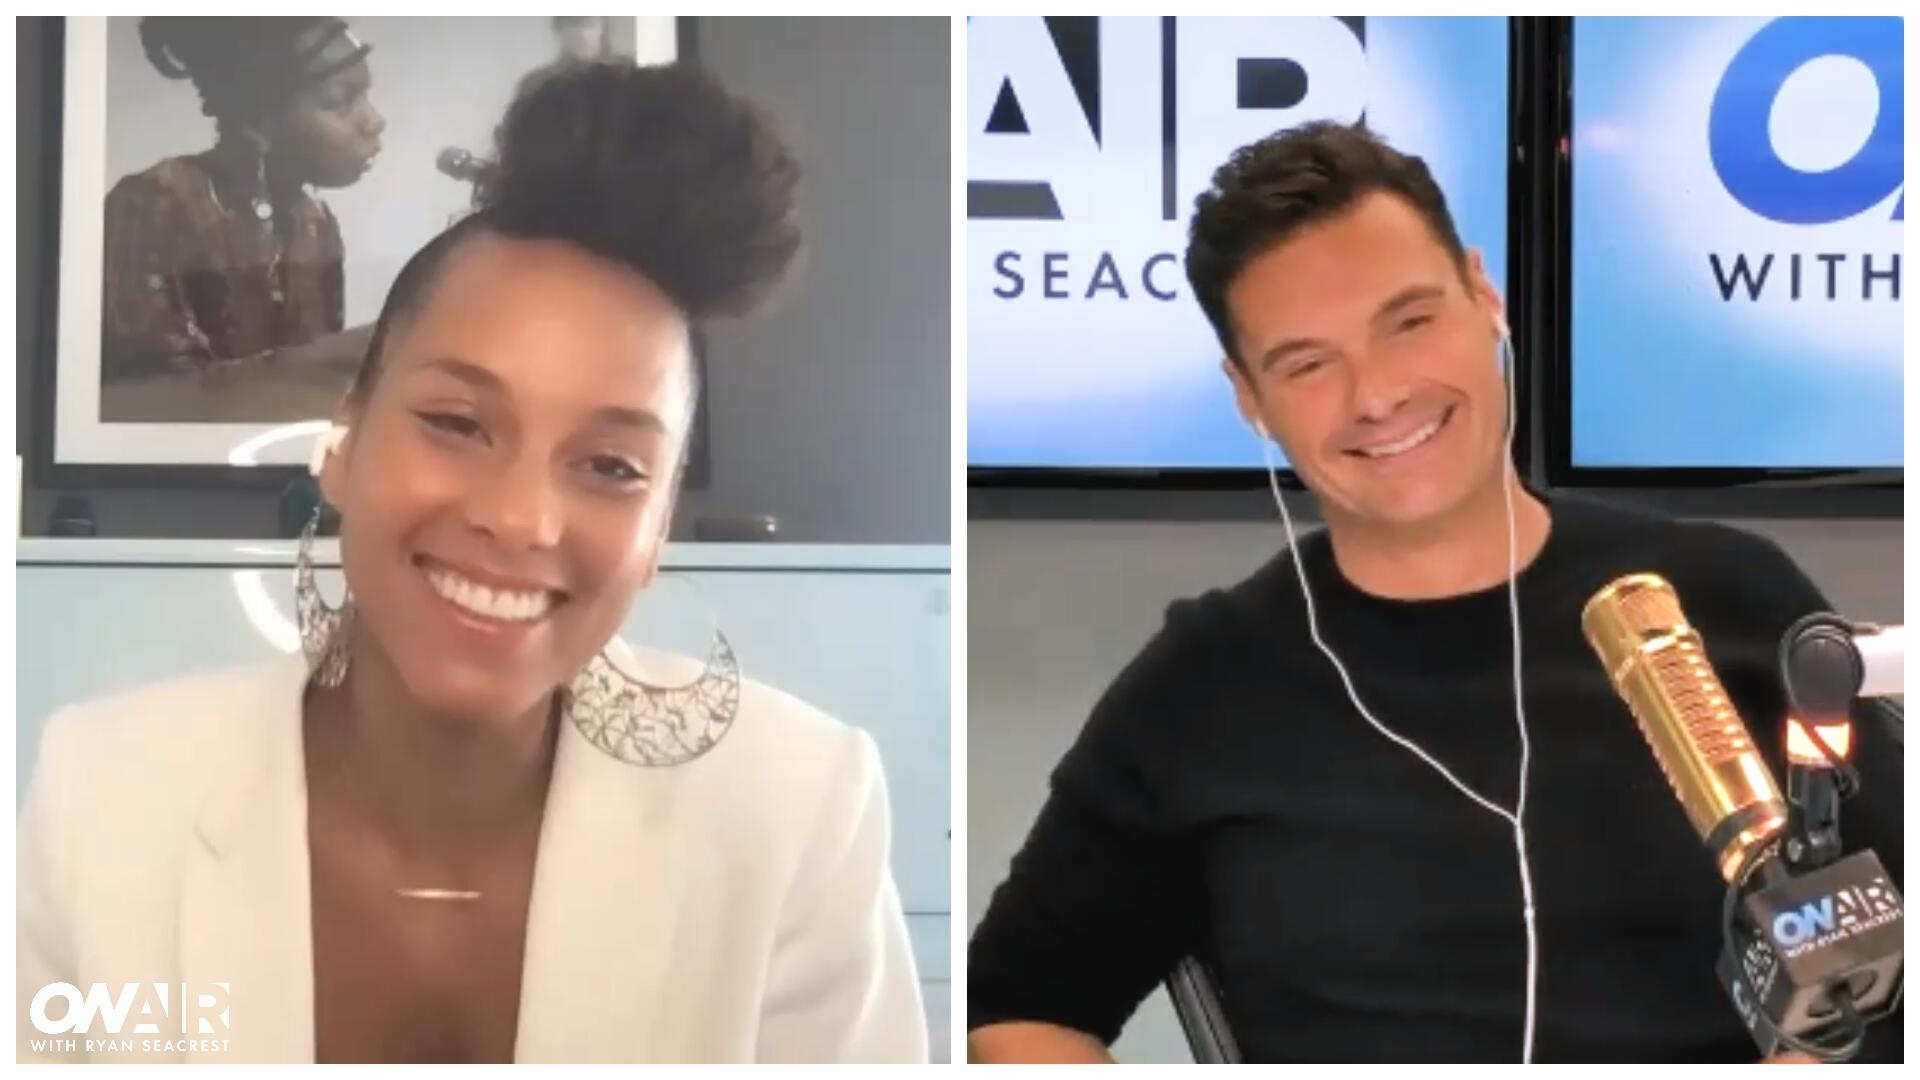 Ryan Seacrest Shares His Own 'Untold Stories' With Alicia Keys: Watch